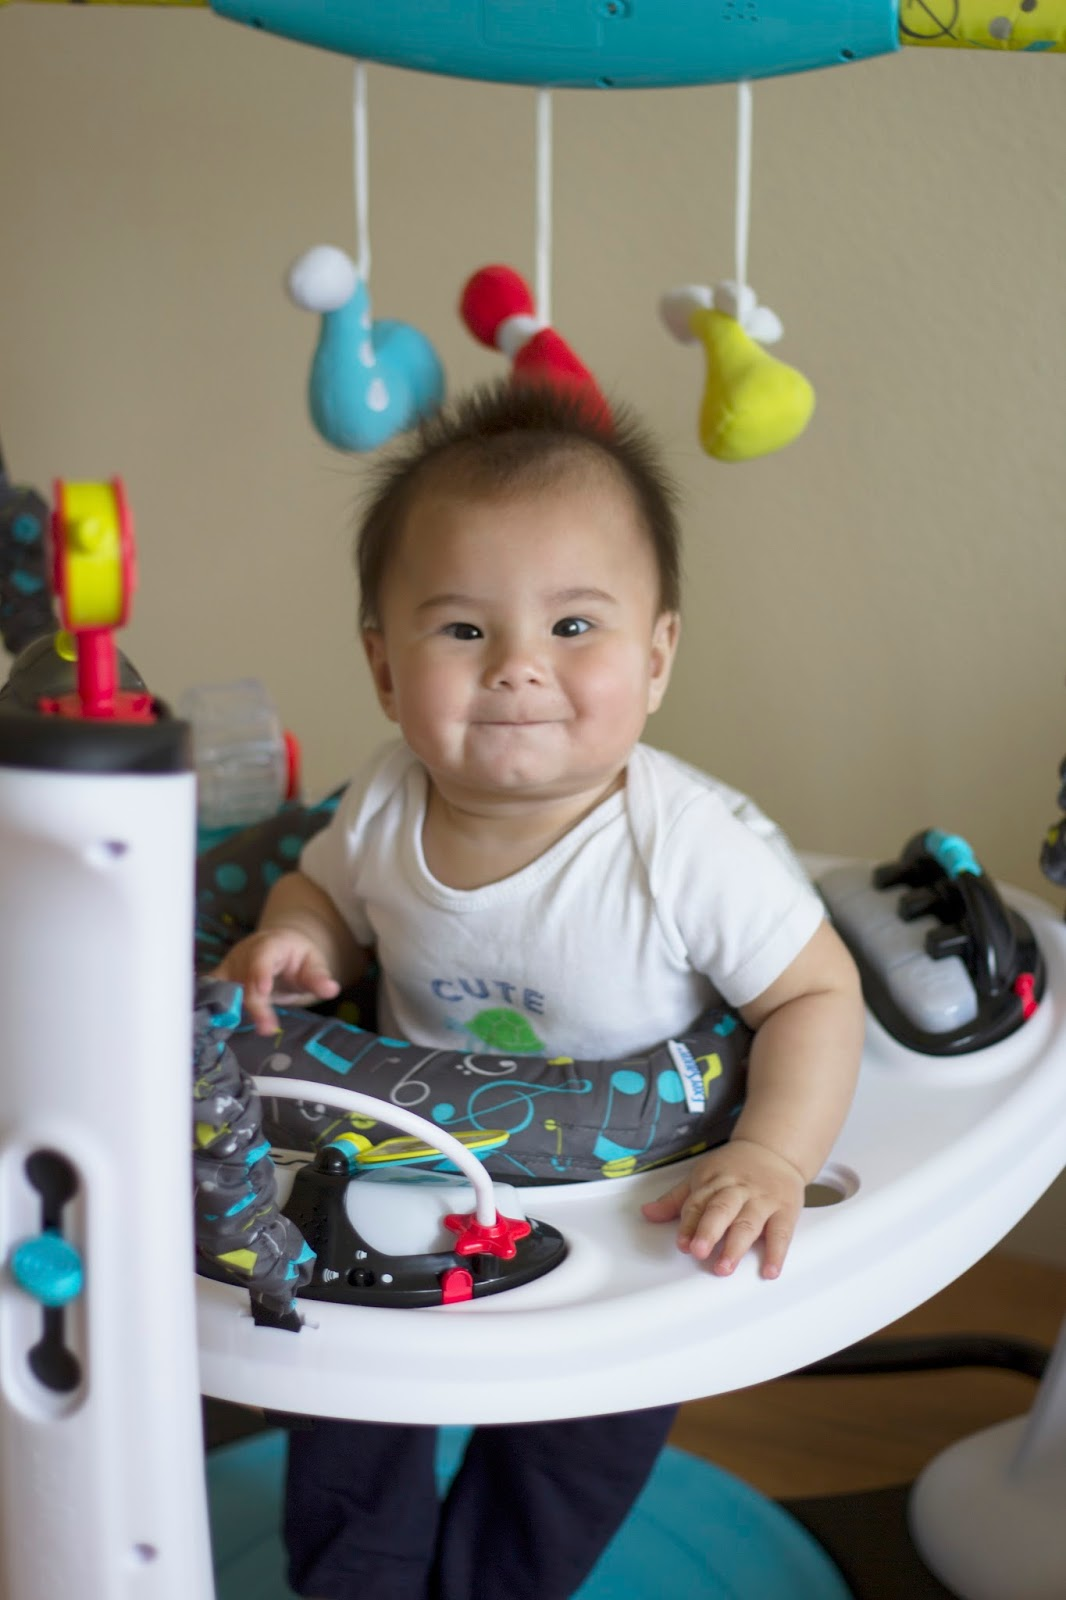 evenflo exersaucer activity center product review – jetting jewels - design with  pillars and a bounce base the exersaucer® jumper providesstability and a solid foundation baby j jumps and pounds on this thingwith a